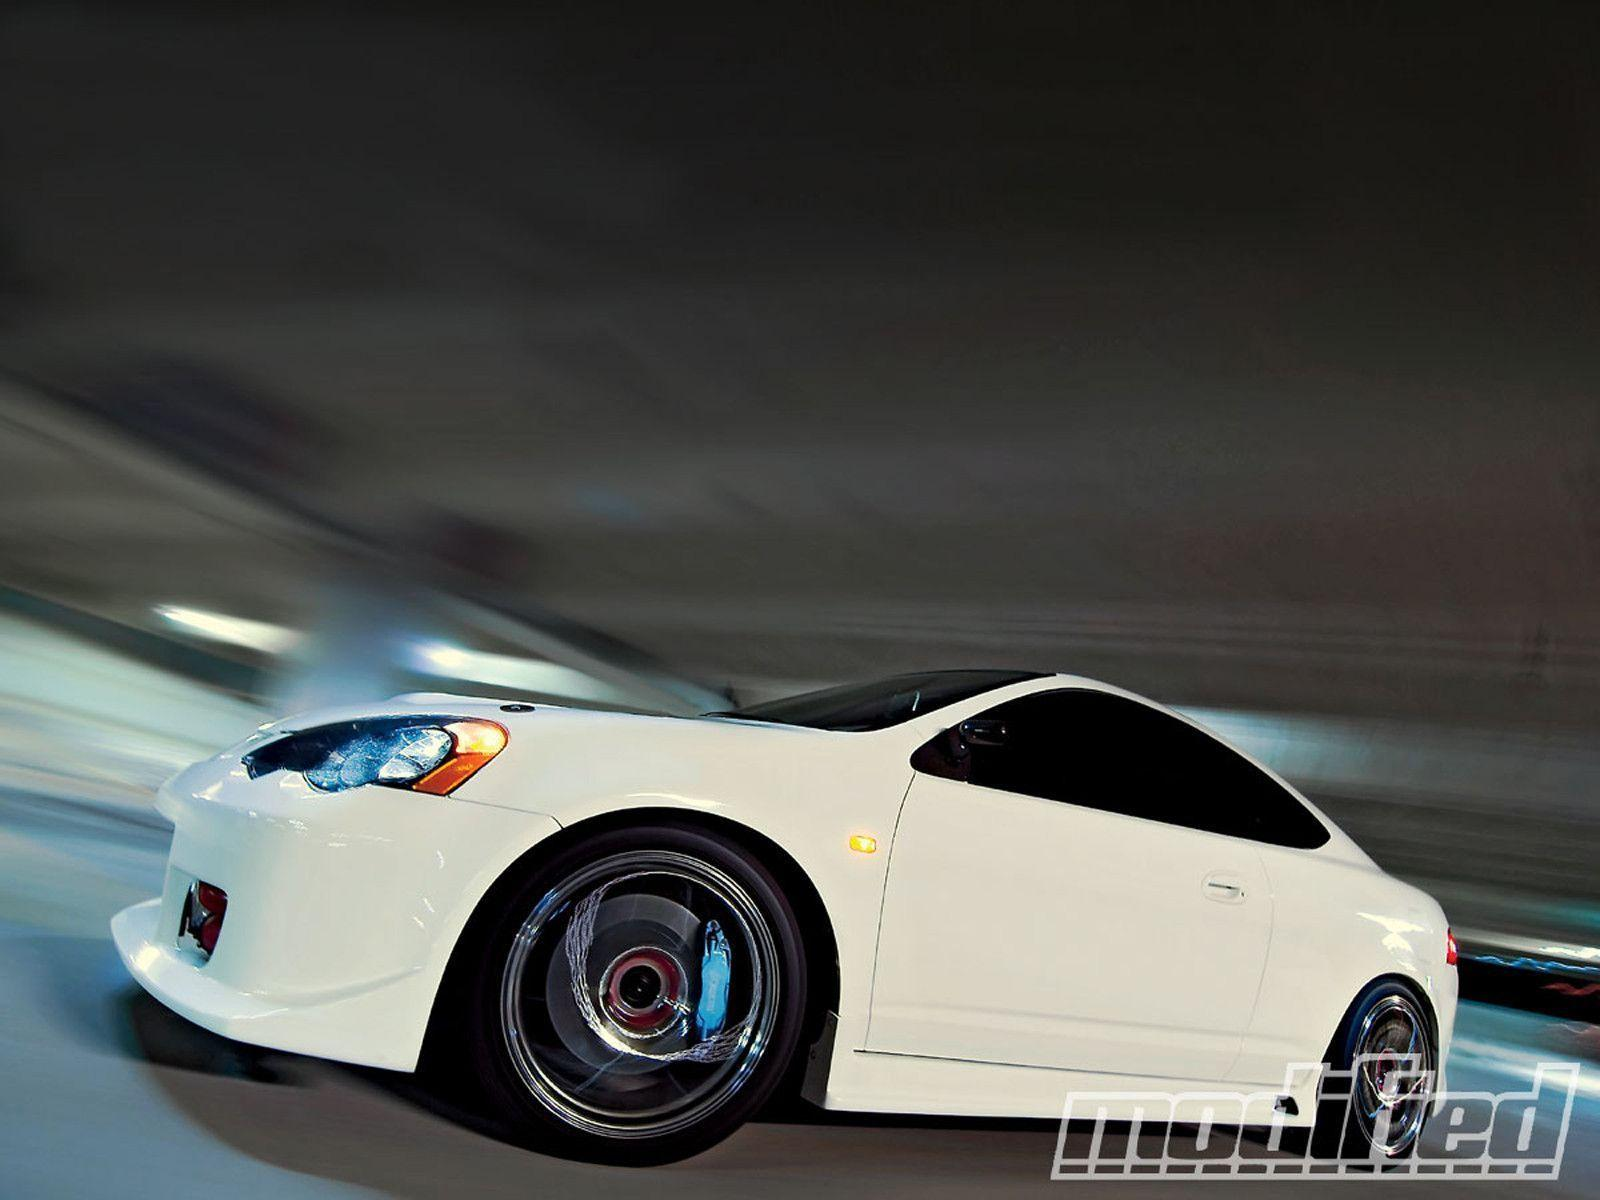 Acura RSX Wallpapers - Wallpaper Cave